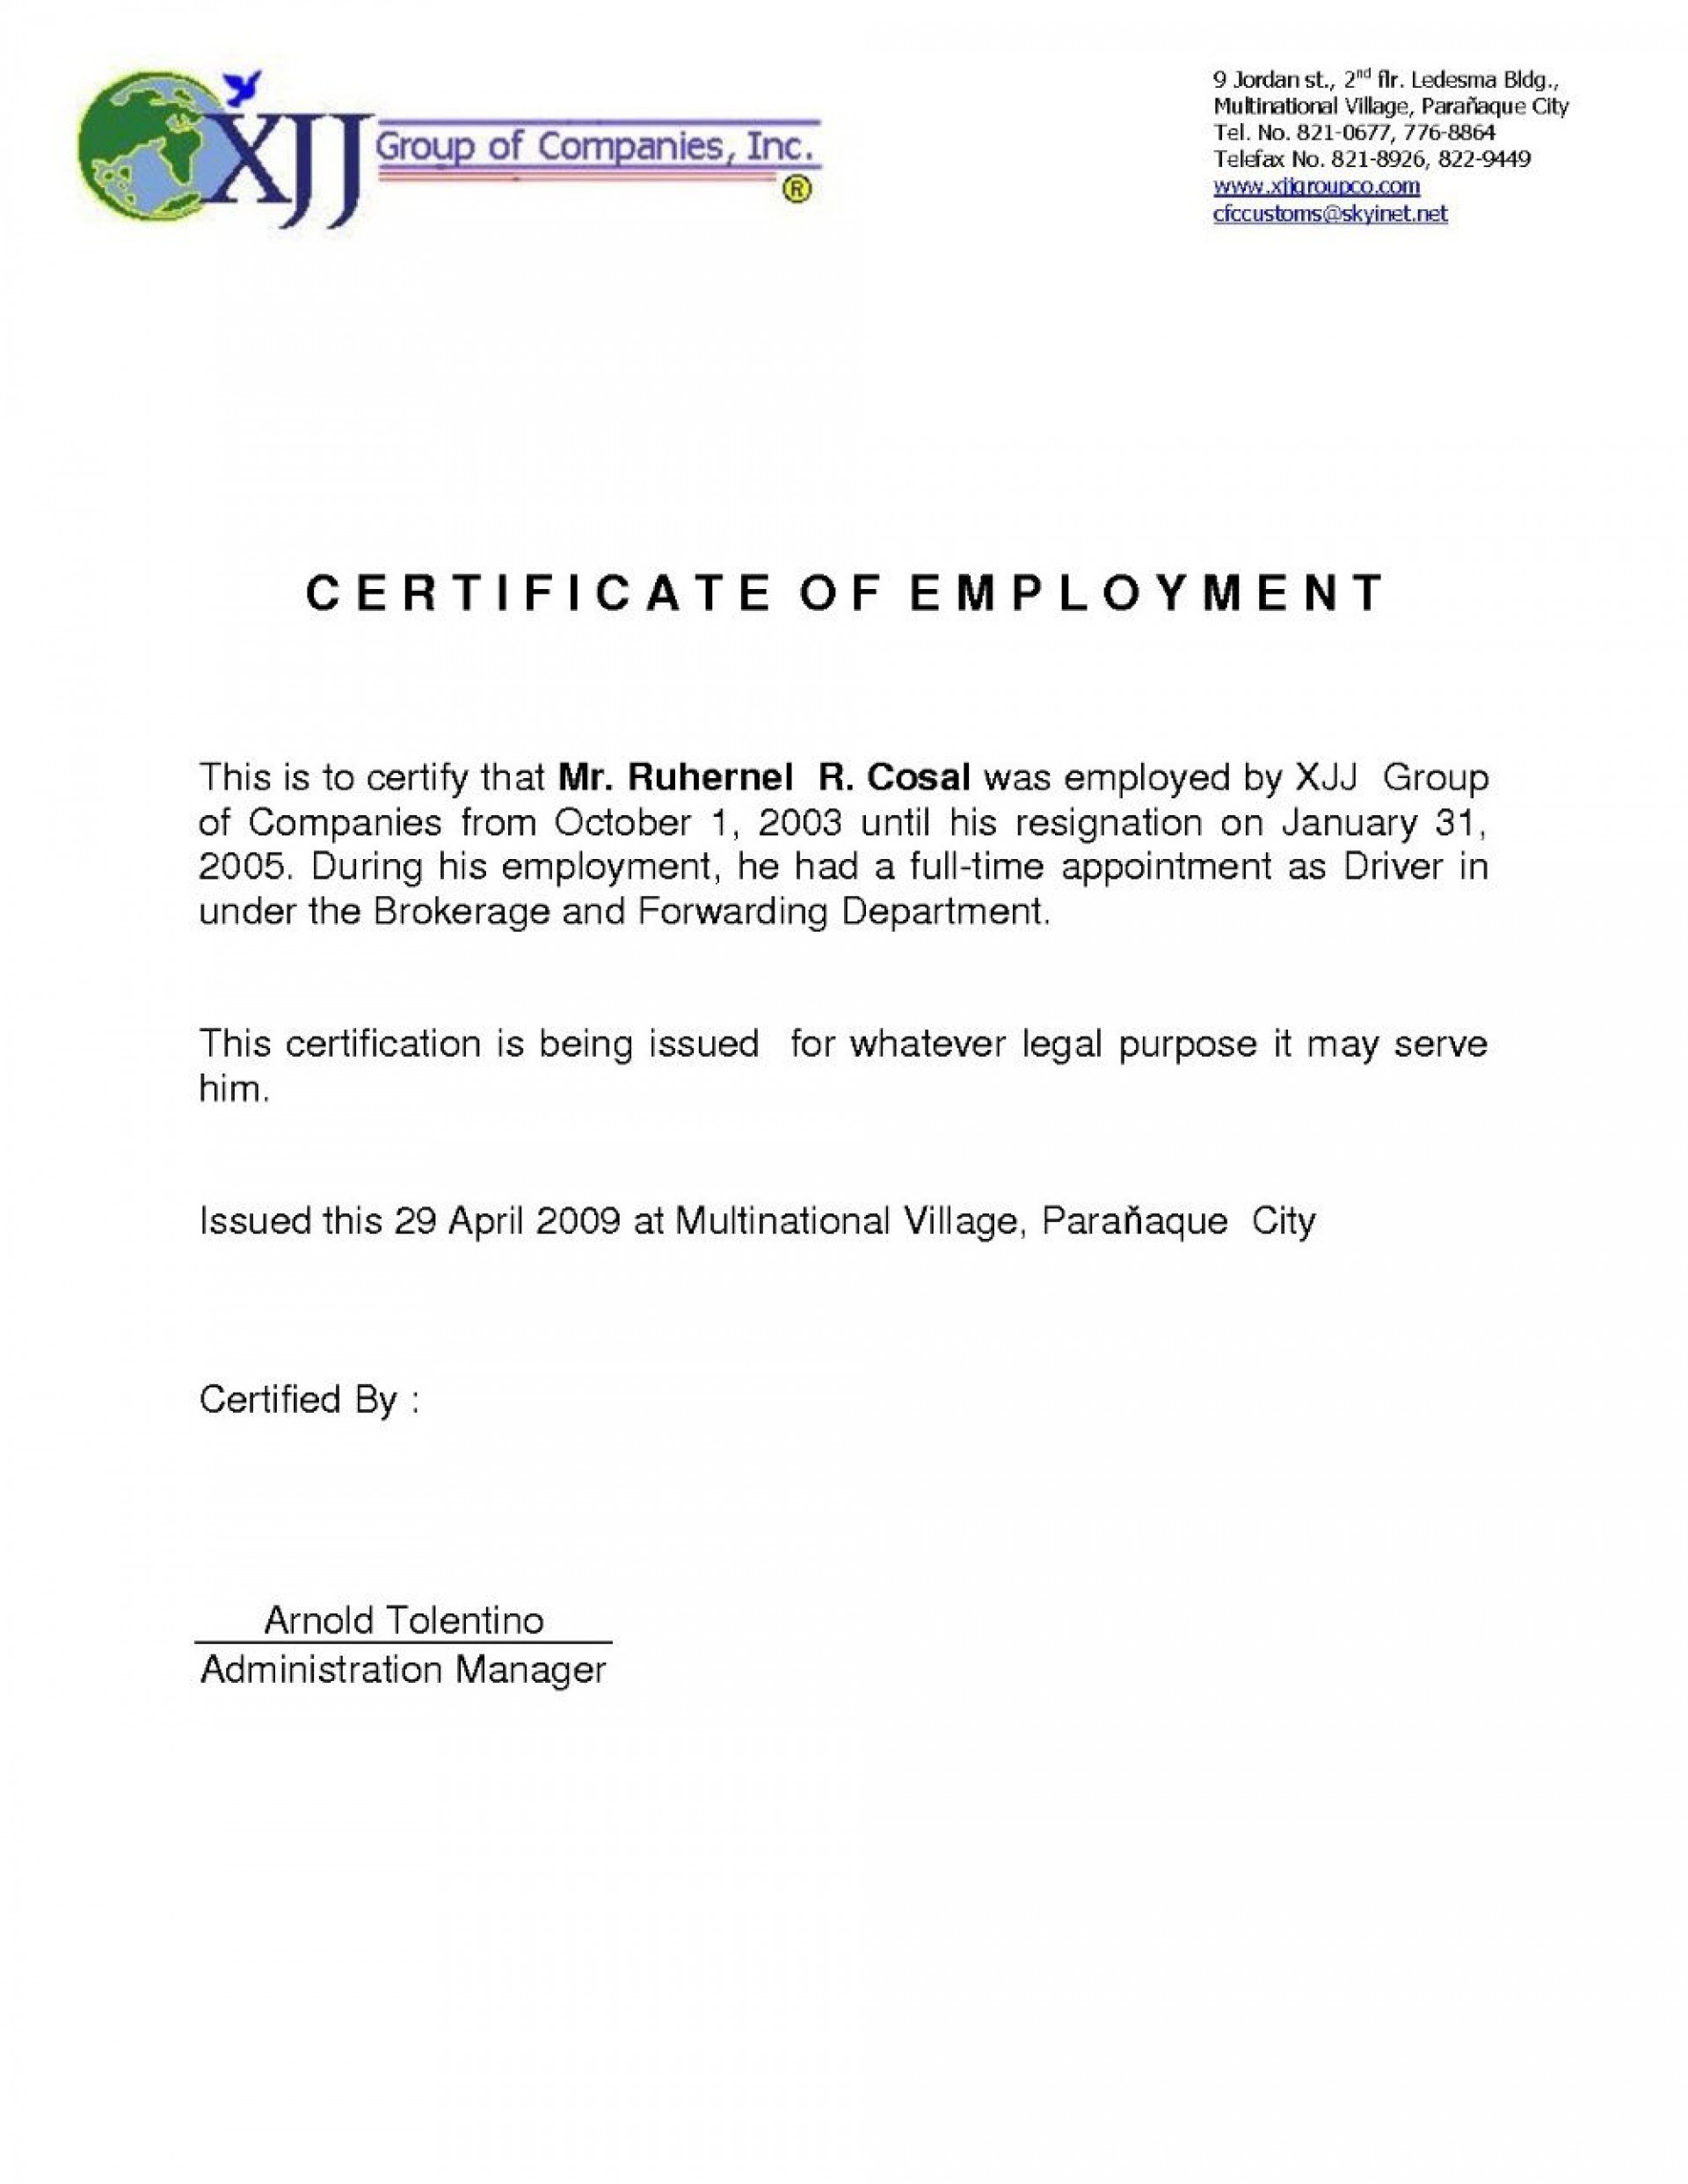 Certificate Of Employment Template  Addictionary regarding Certificate Of Employment Template